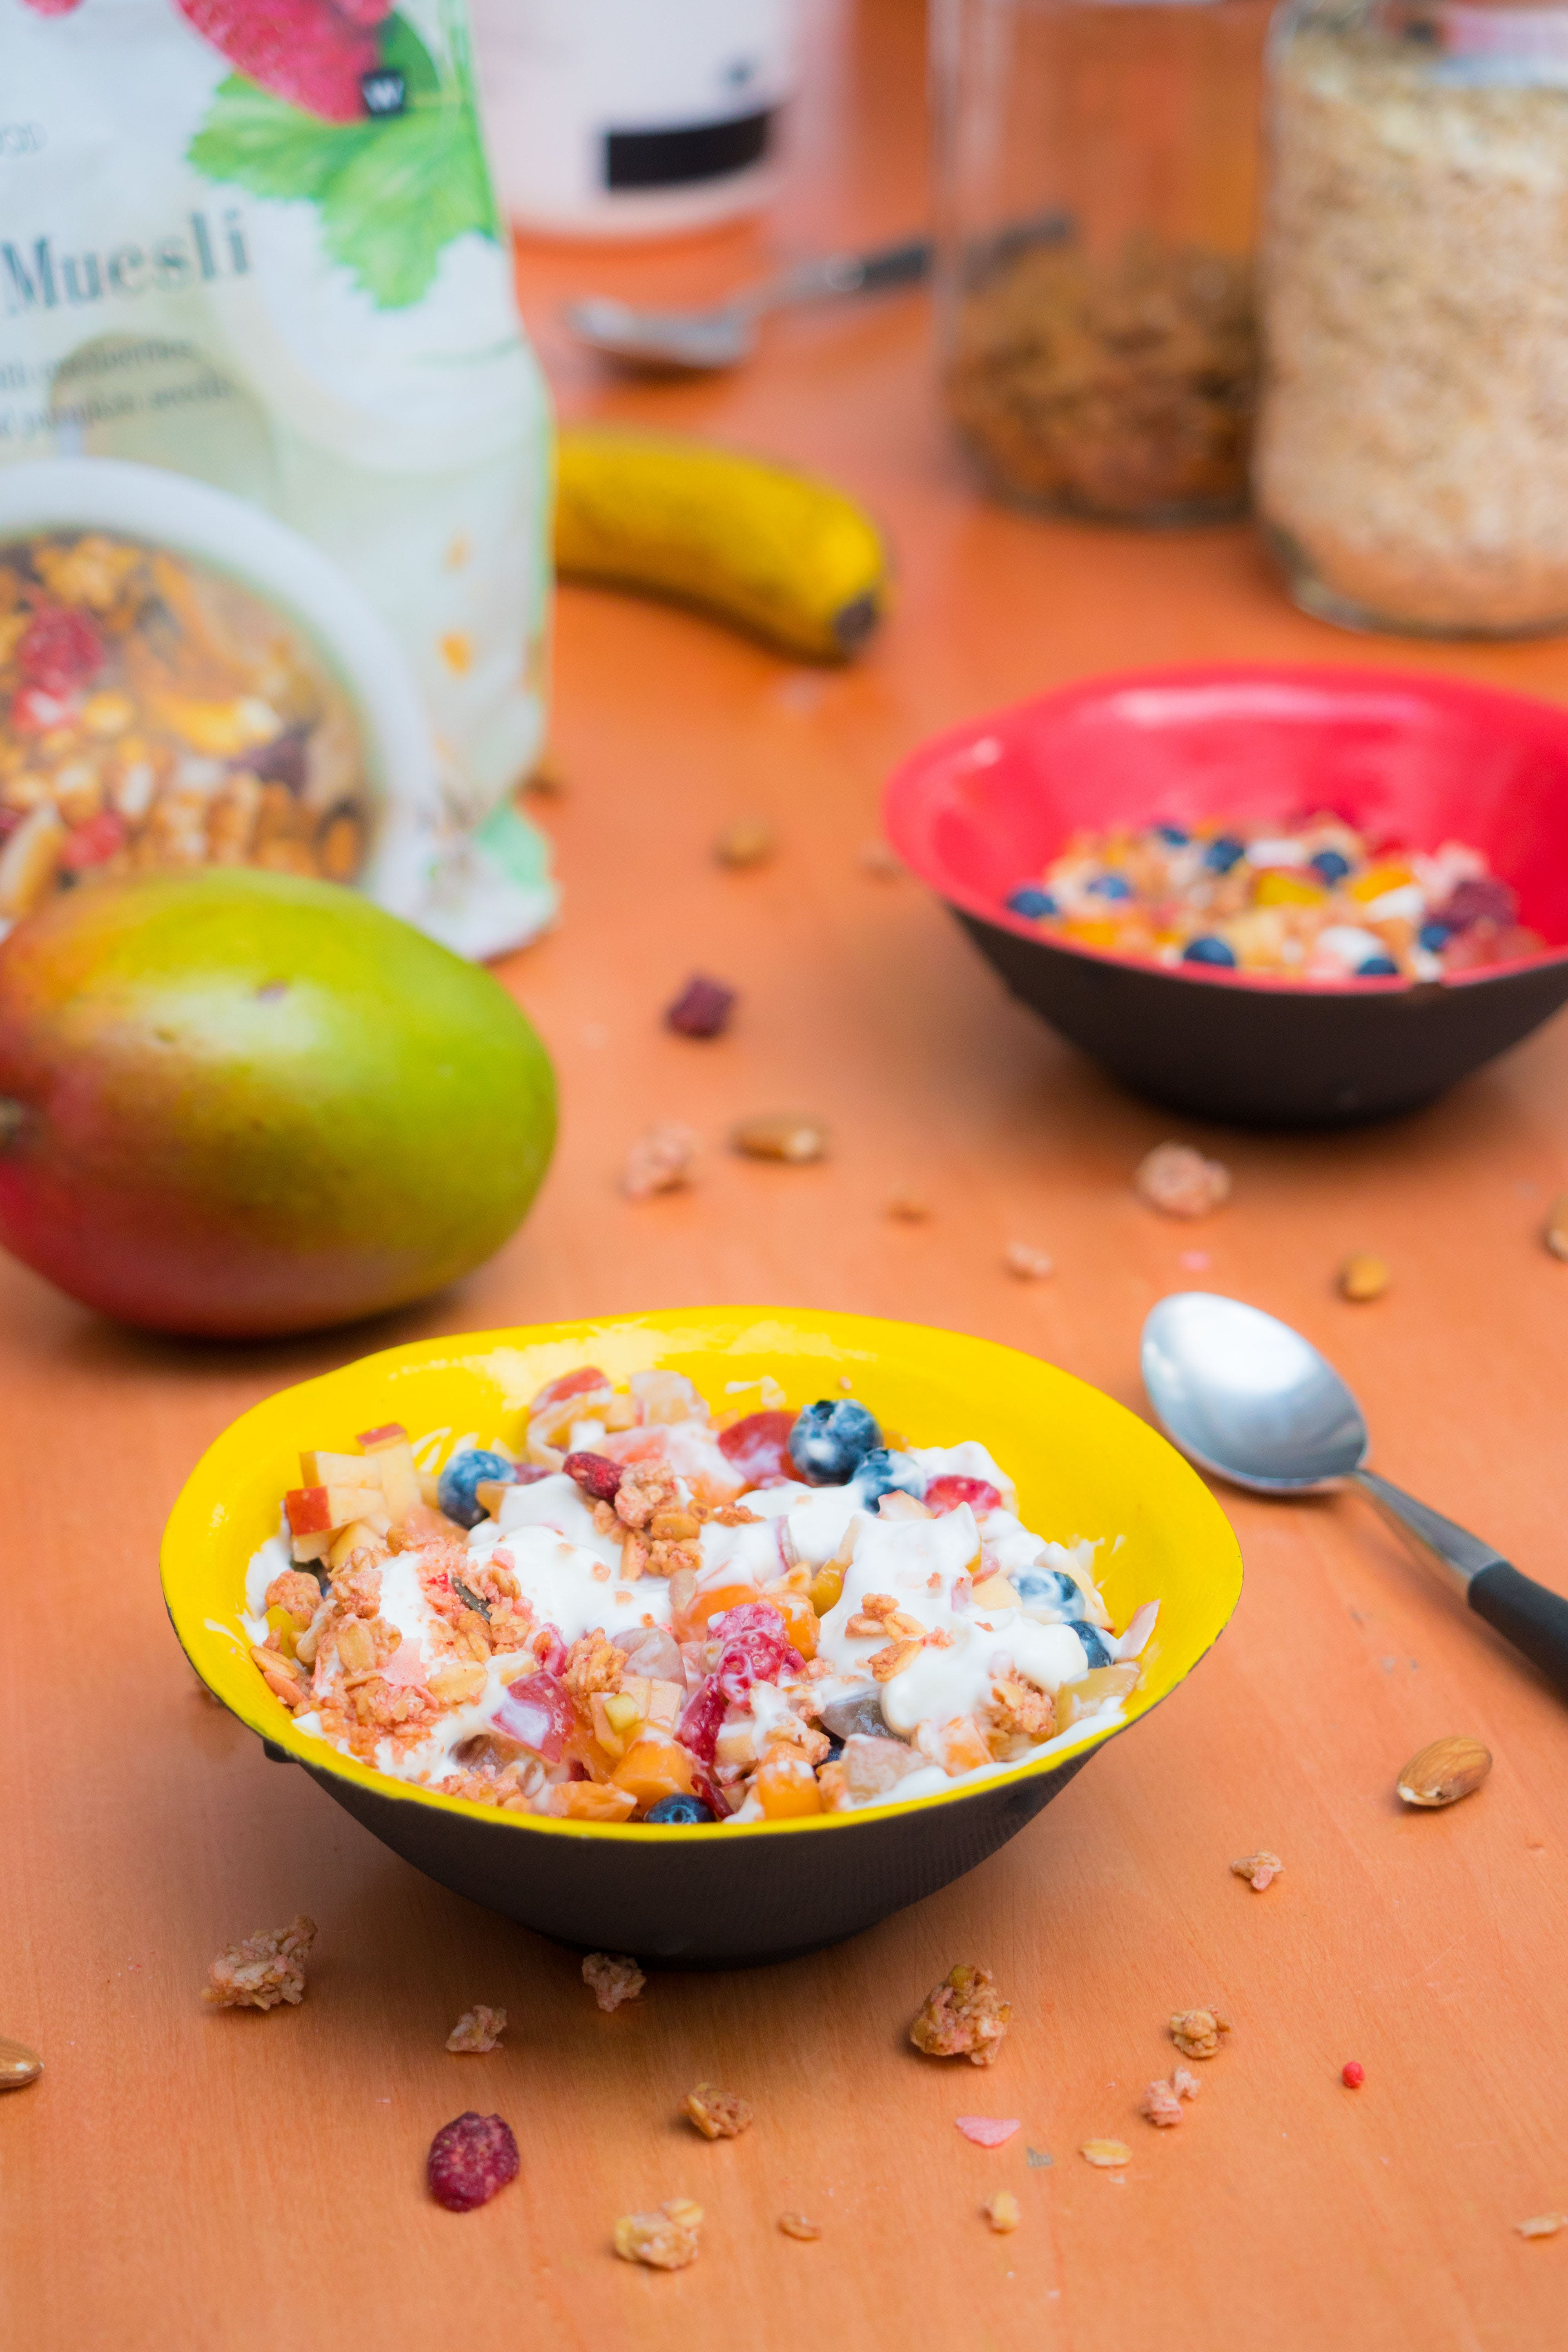 bowls of cereals on a table